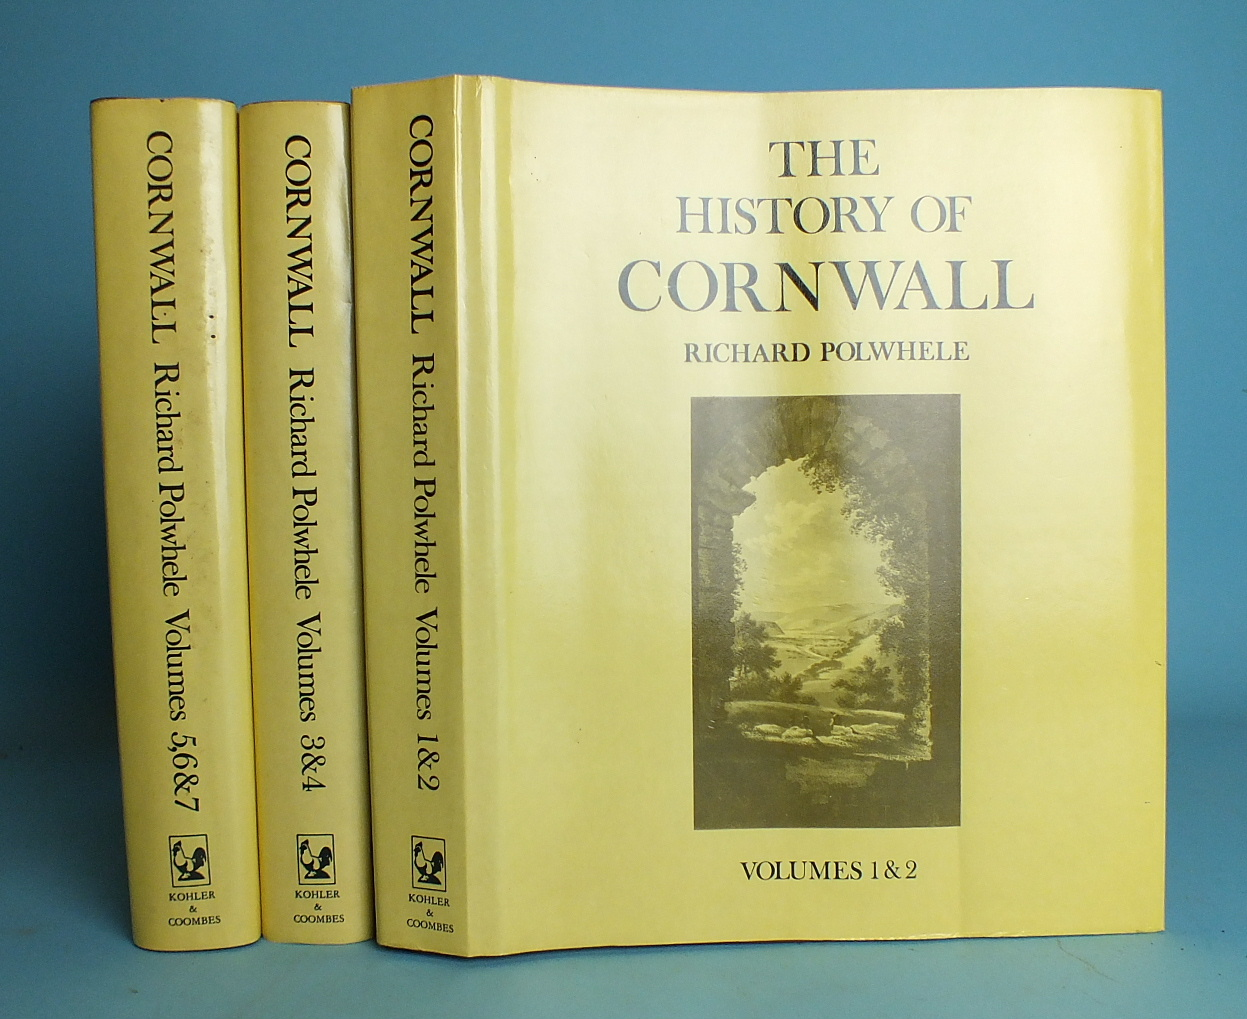 Lot 168 - Polwhele (Richard), The History of Cornwall, facsimile of seven volumes, bound as three, dwps, cl